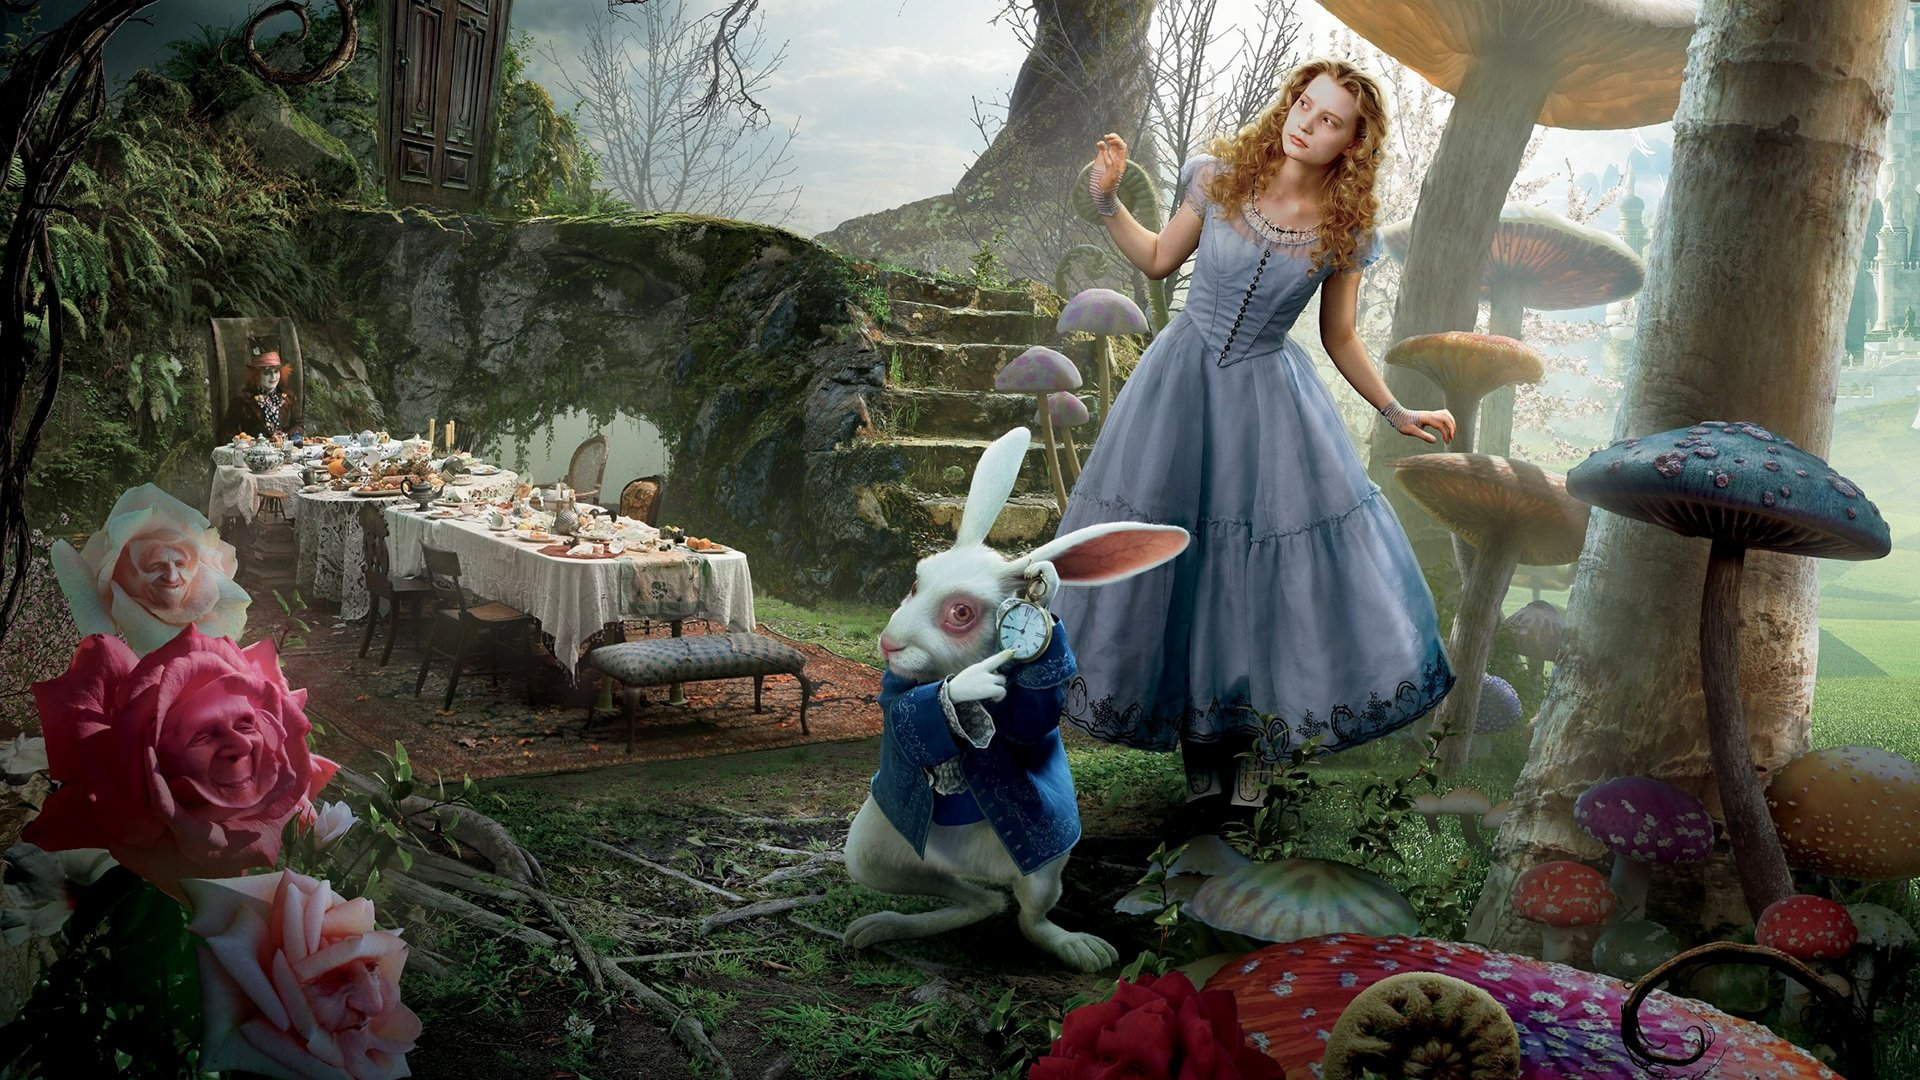 alice in wonderland wordplay Alice in wonderland is a live action fantasy dark comedy adventure film released in 2010, based on lewis carroll's fantasy novels, alice's adventures in wonderland and through the looking-glass.